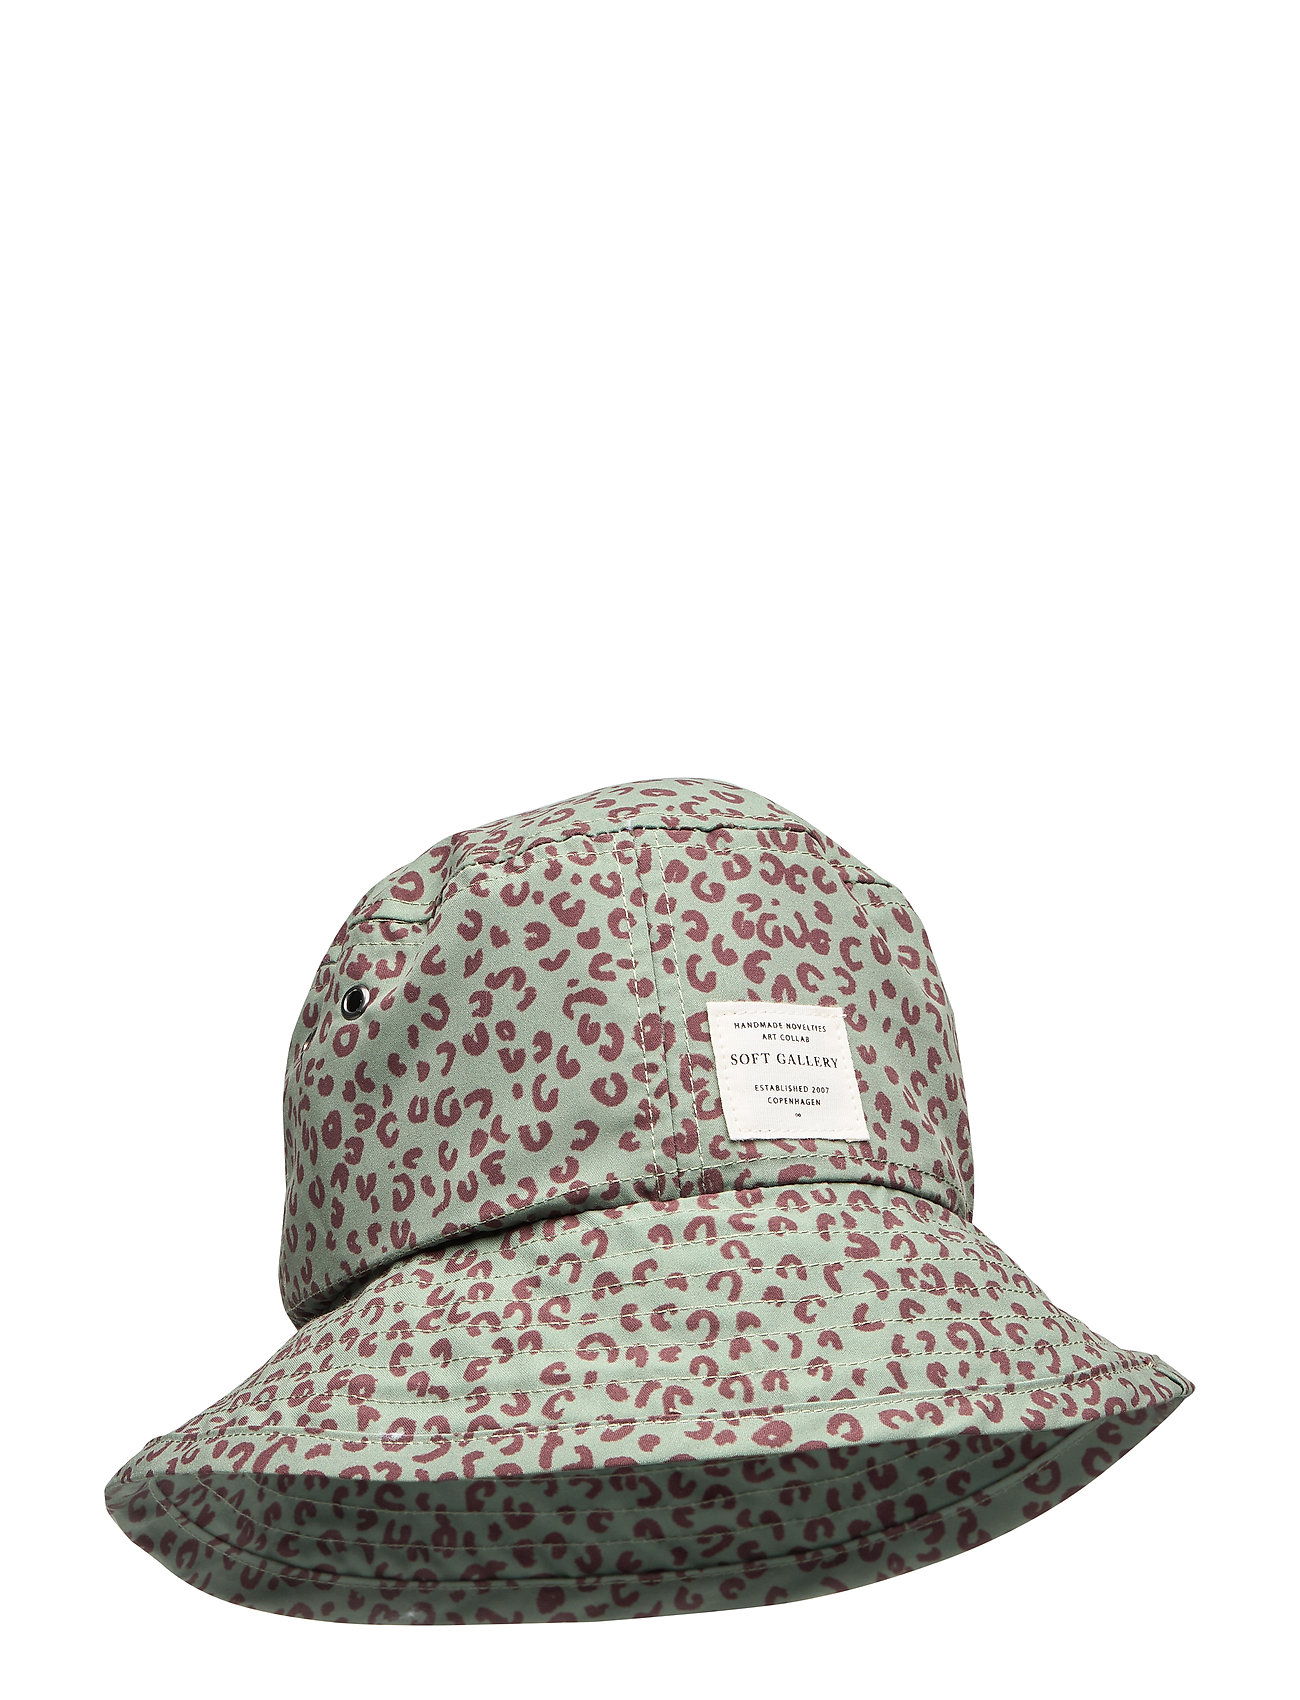 Soft Gallery Camden Hat - OIL GREEN, AOP LEOSPOT